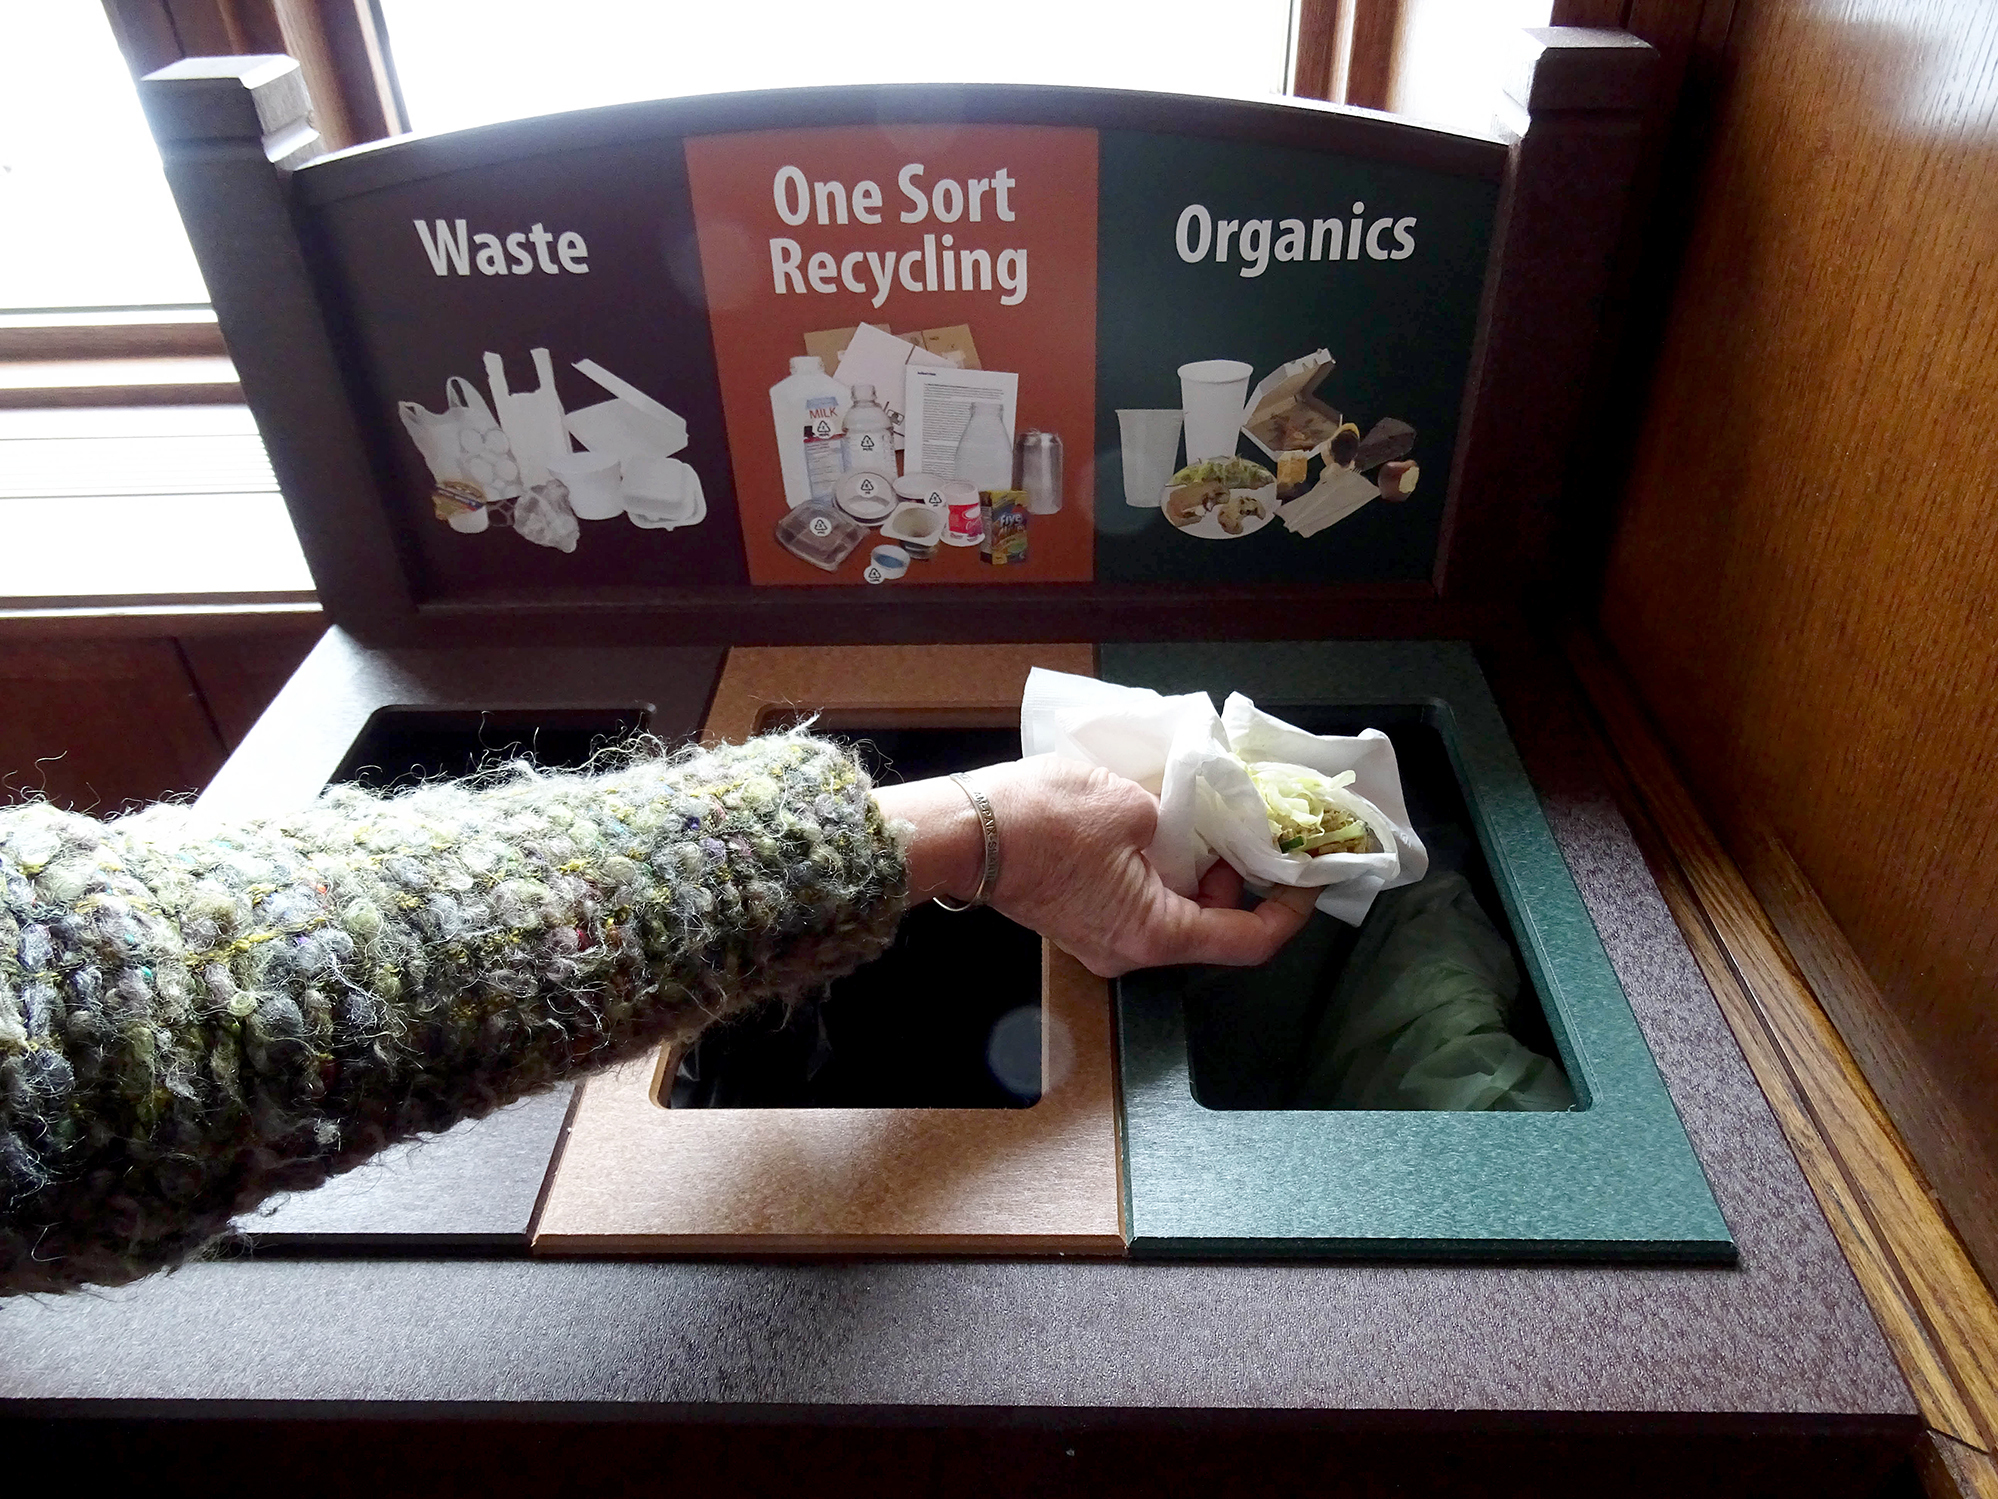 The compost/recycle system at Plymouth Congregational Church in Minneapolis, Minn. According to Creation Justice Ministries, it's just one example of the various projects churches have implemented to reduce waste.